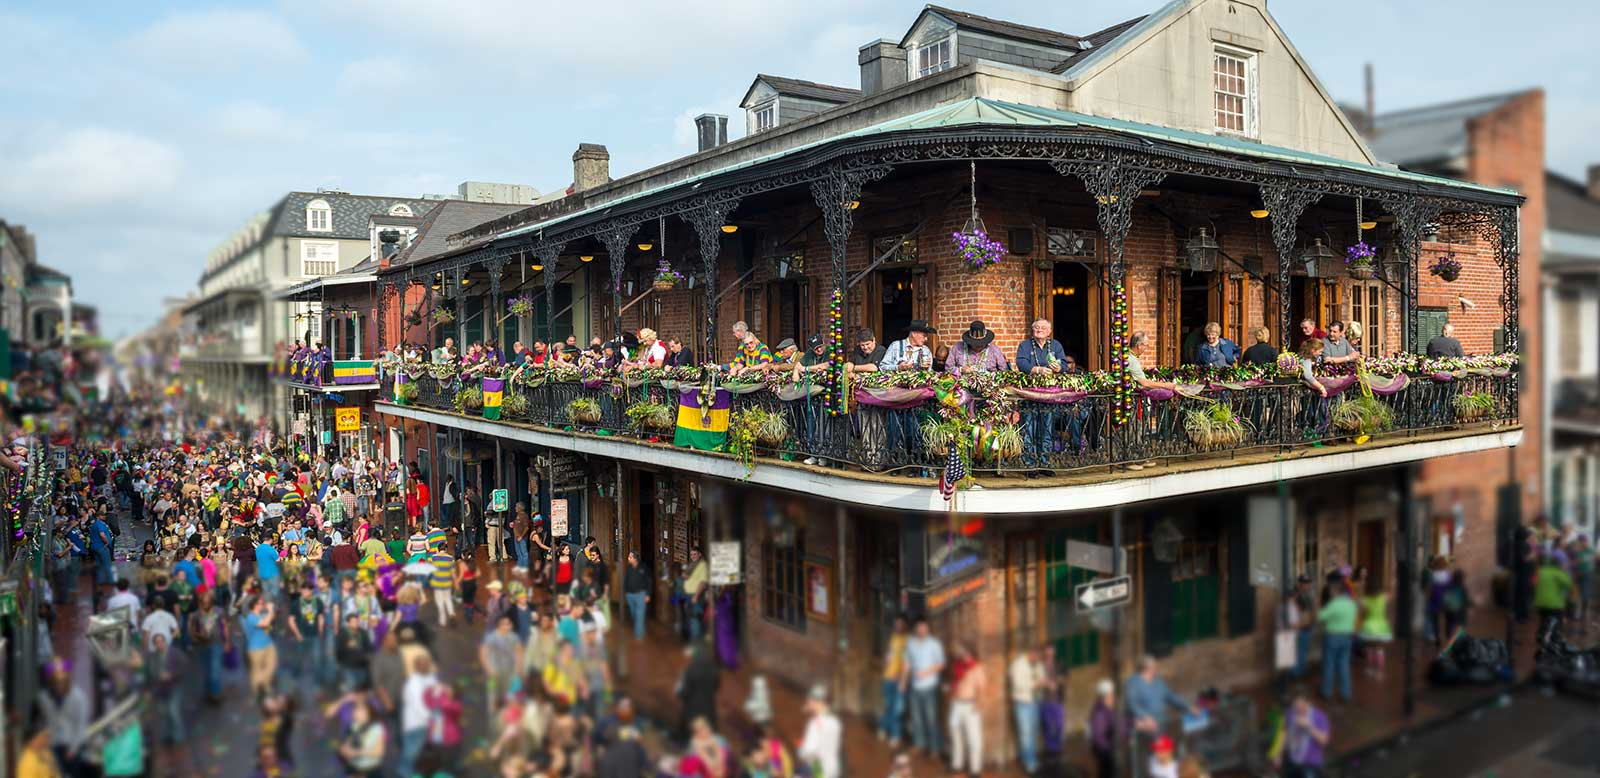 Calendar Of Events New Orleans 2020 2020 Mardi Gras Parade Schedule | Mardi Gras New Orleans